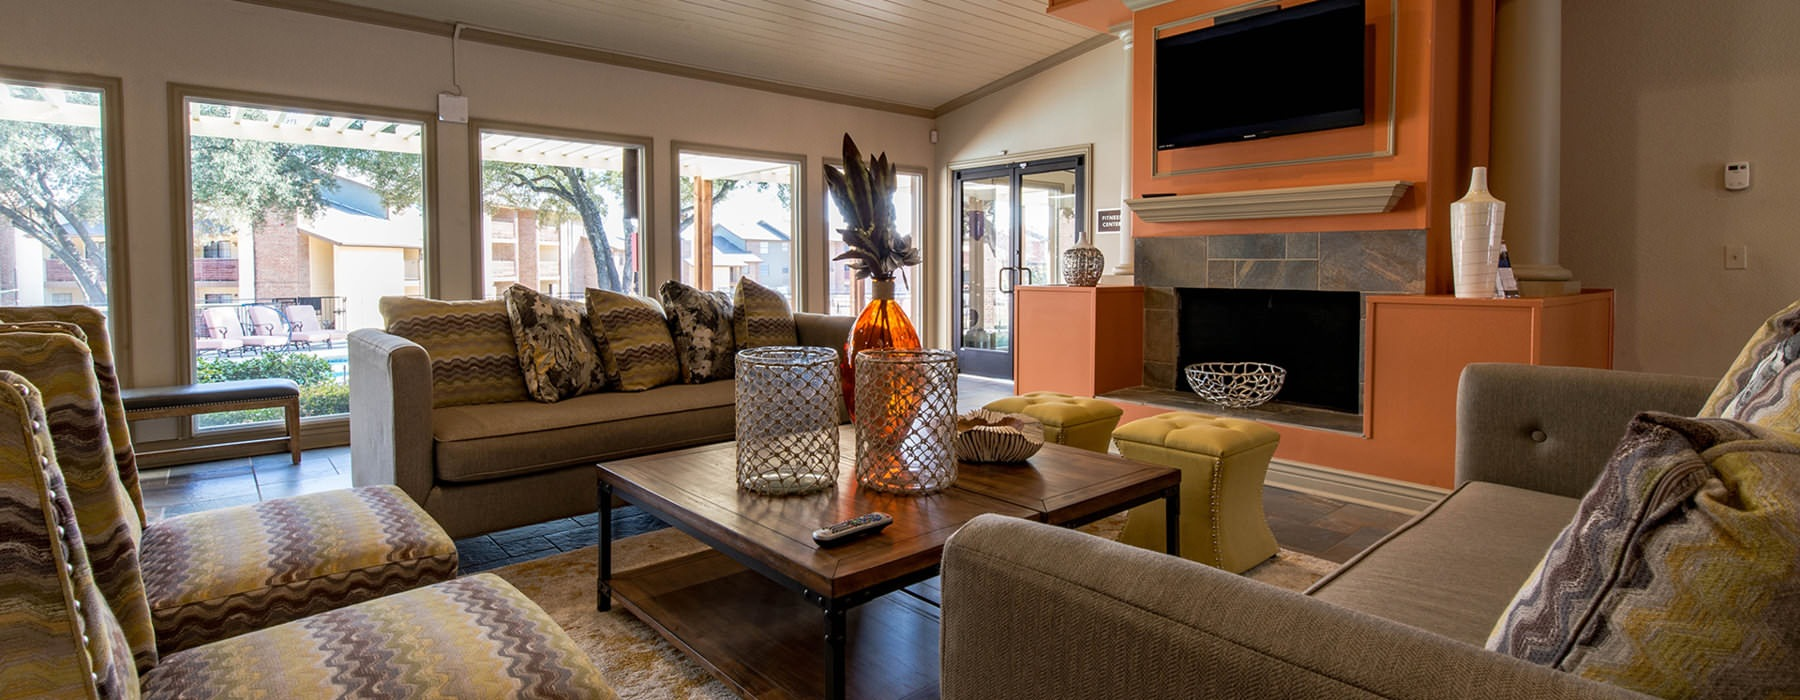 Comfortable Club Lounge with mounted tv over fireplace